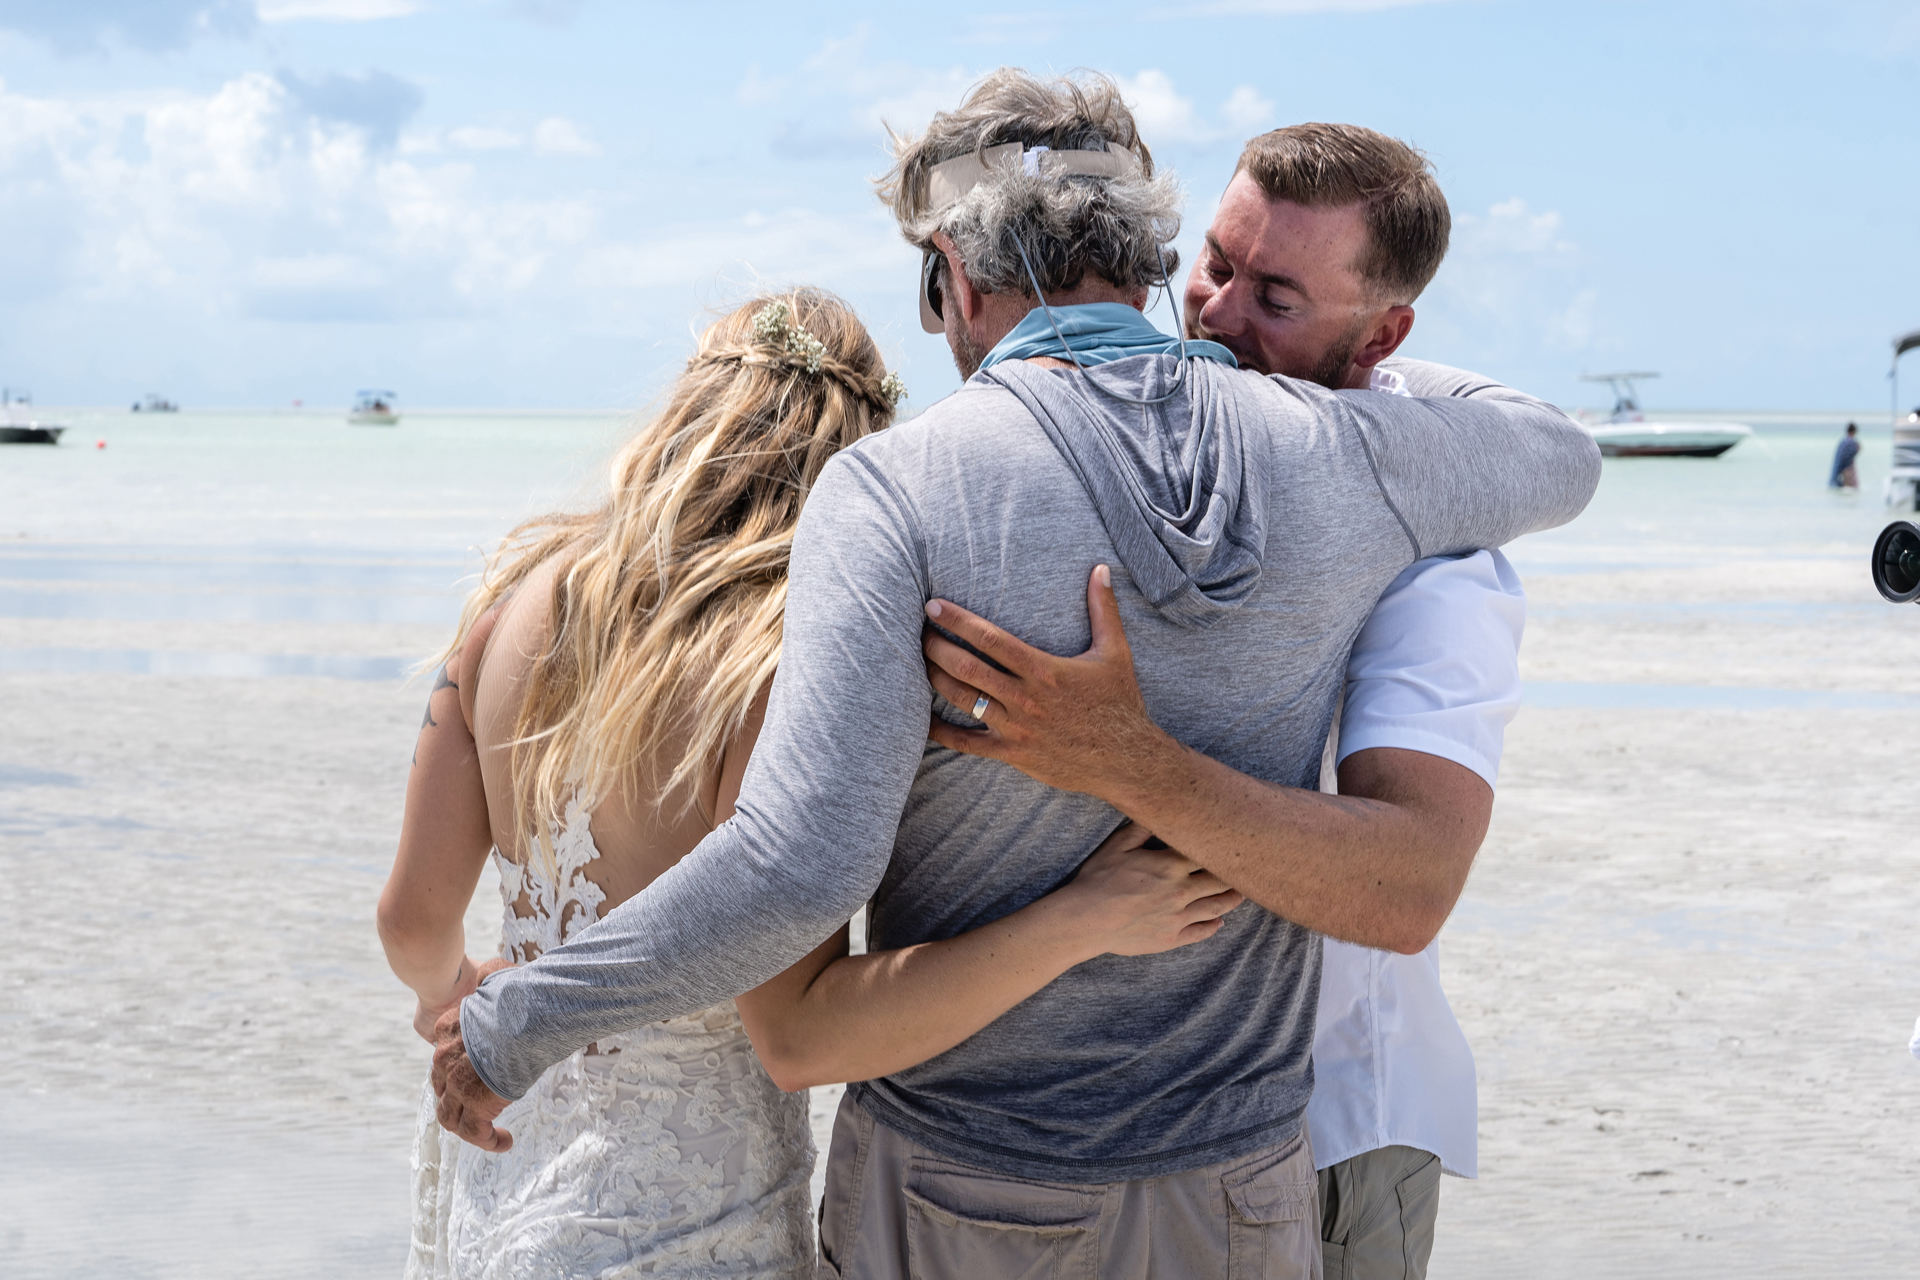 FL Keys Elopement Photographer - Key West Weddings | After the beach ceremony, the proud father of the groom congratulates the couple